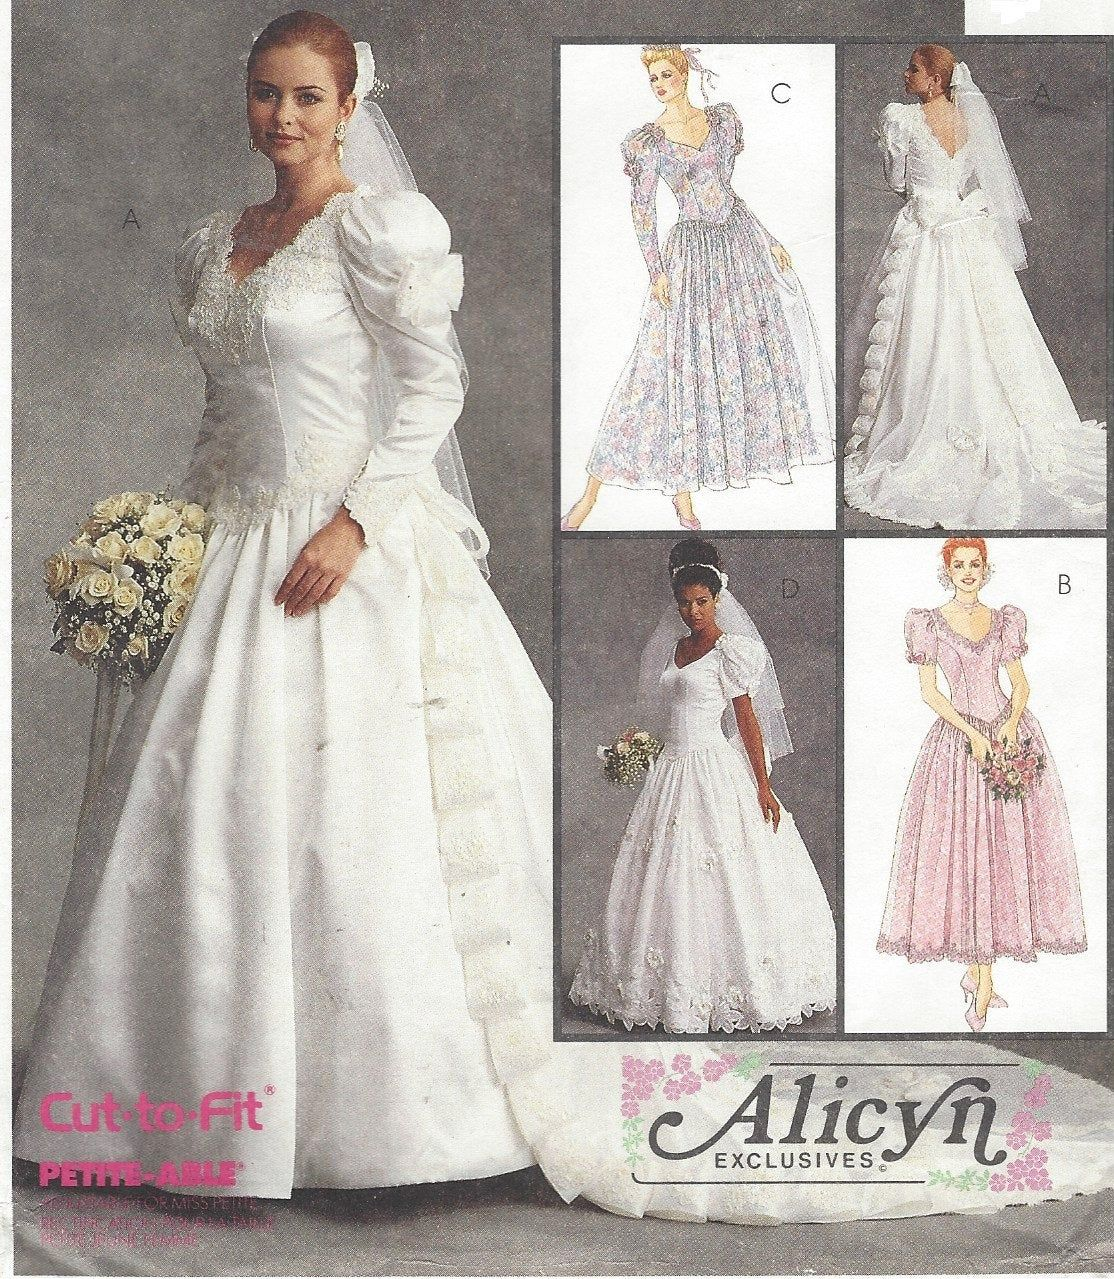 90s Alicyn Exclusives Womens Wedding Gown Detachable Train